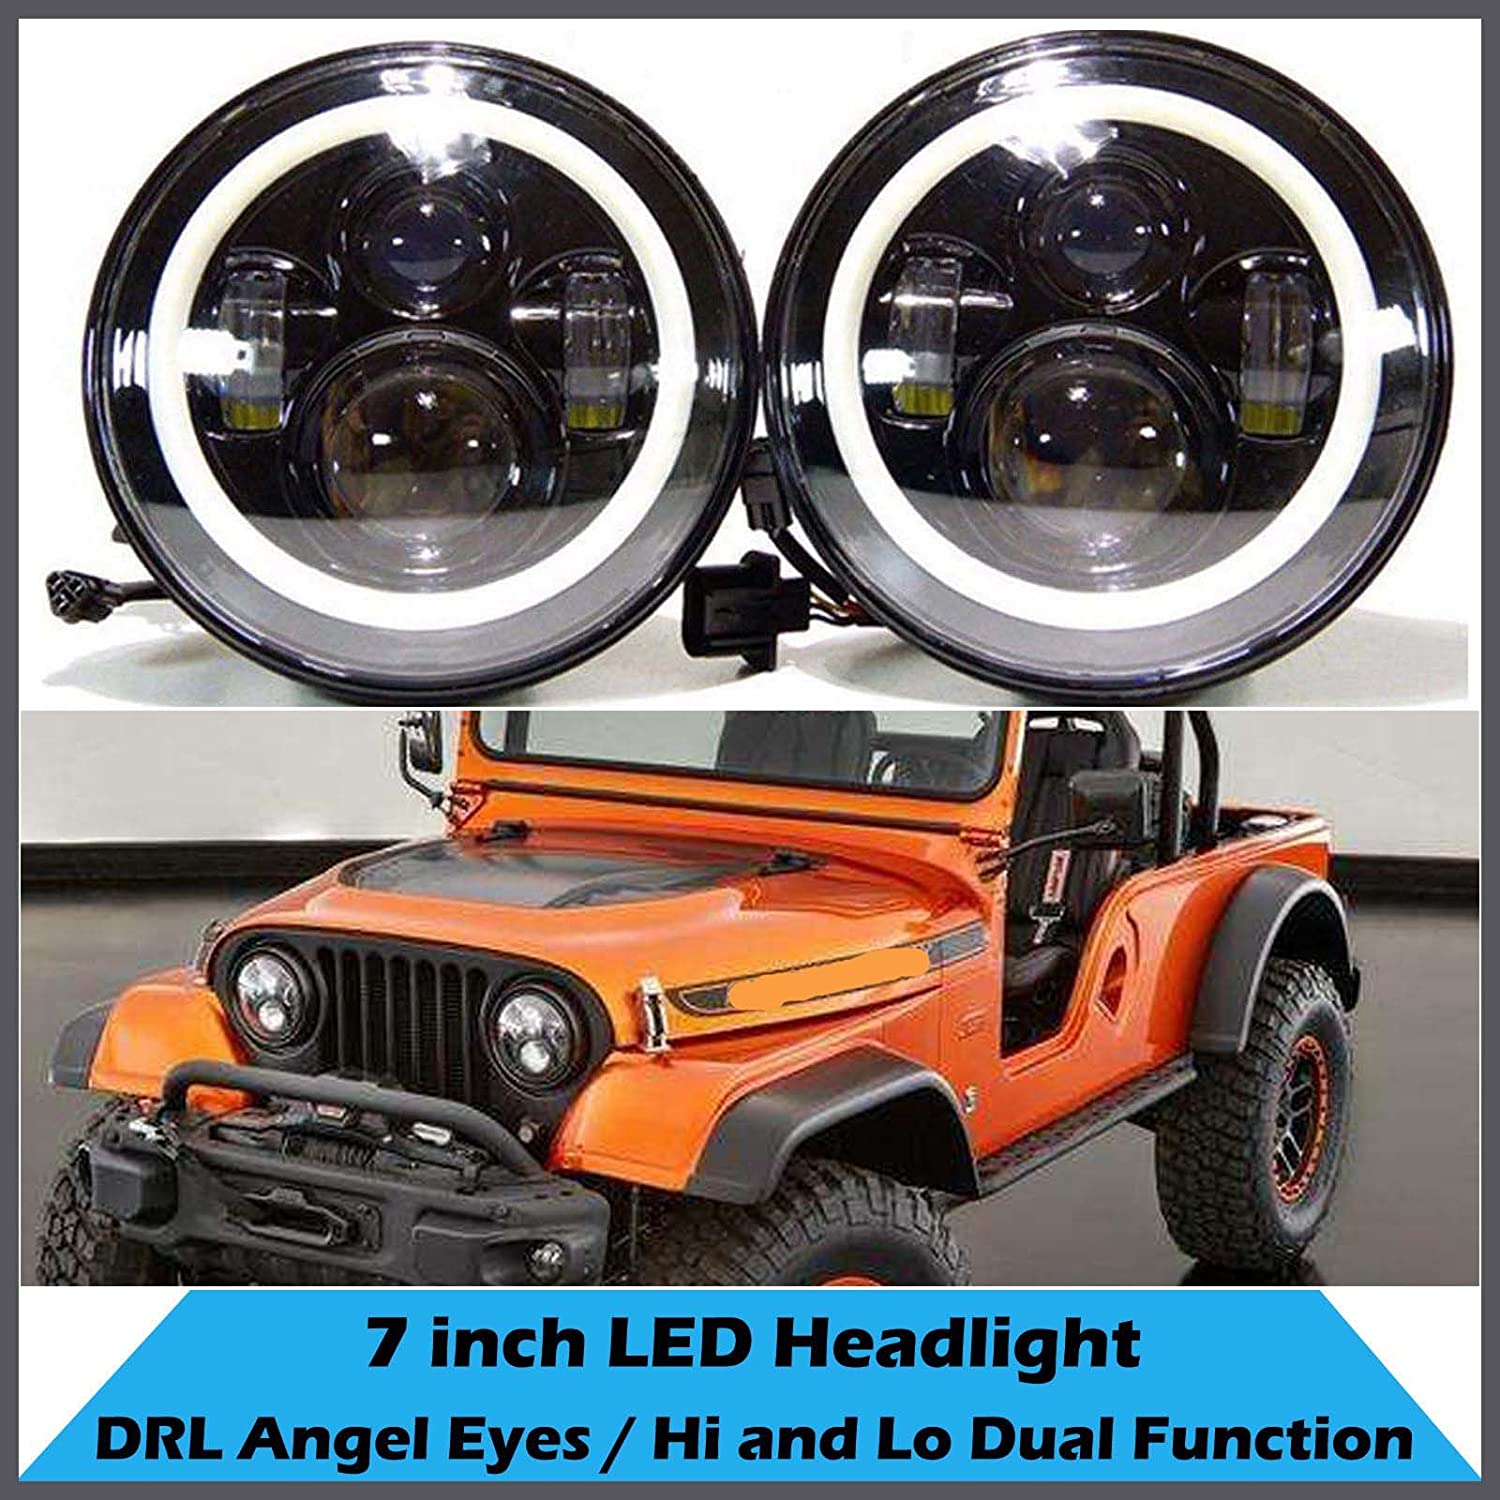 For Jeep Cj5 Cj6 Cj7 7inch Led Headlight Round Light H4 Exciting Scout Crafts 1 Or 2 Headlamp H13 Drl 120w Total Hi Lo Beam Pack Of Automotive